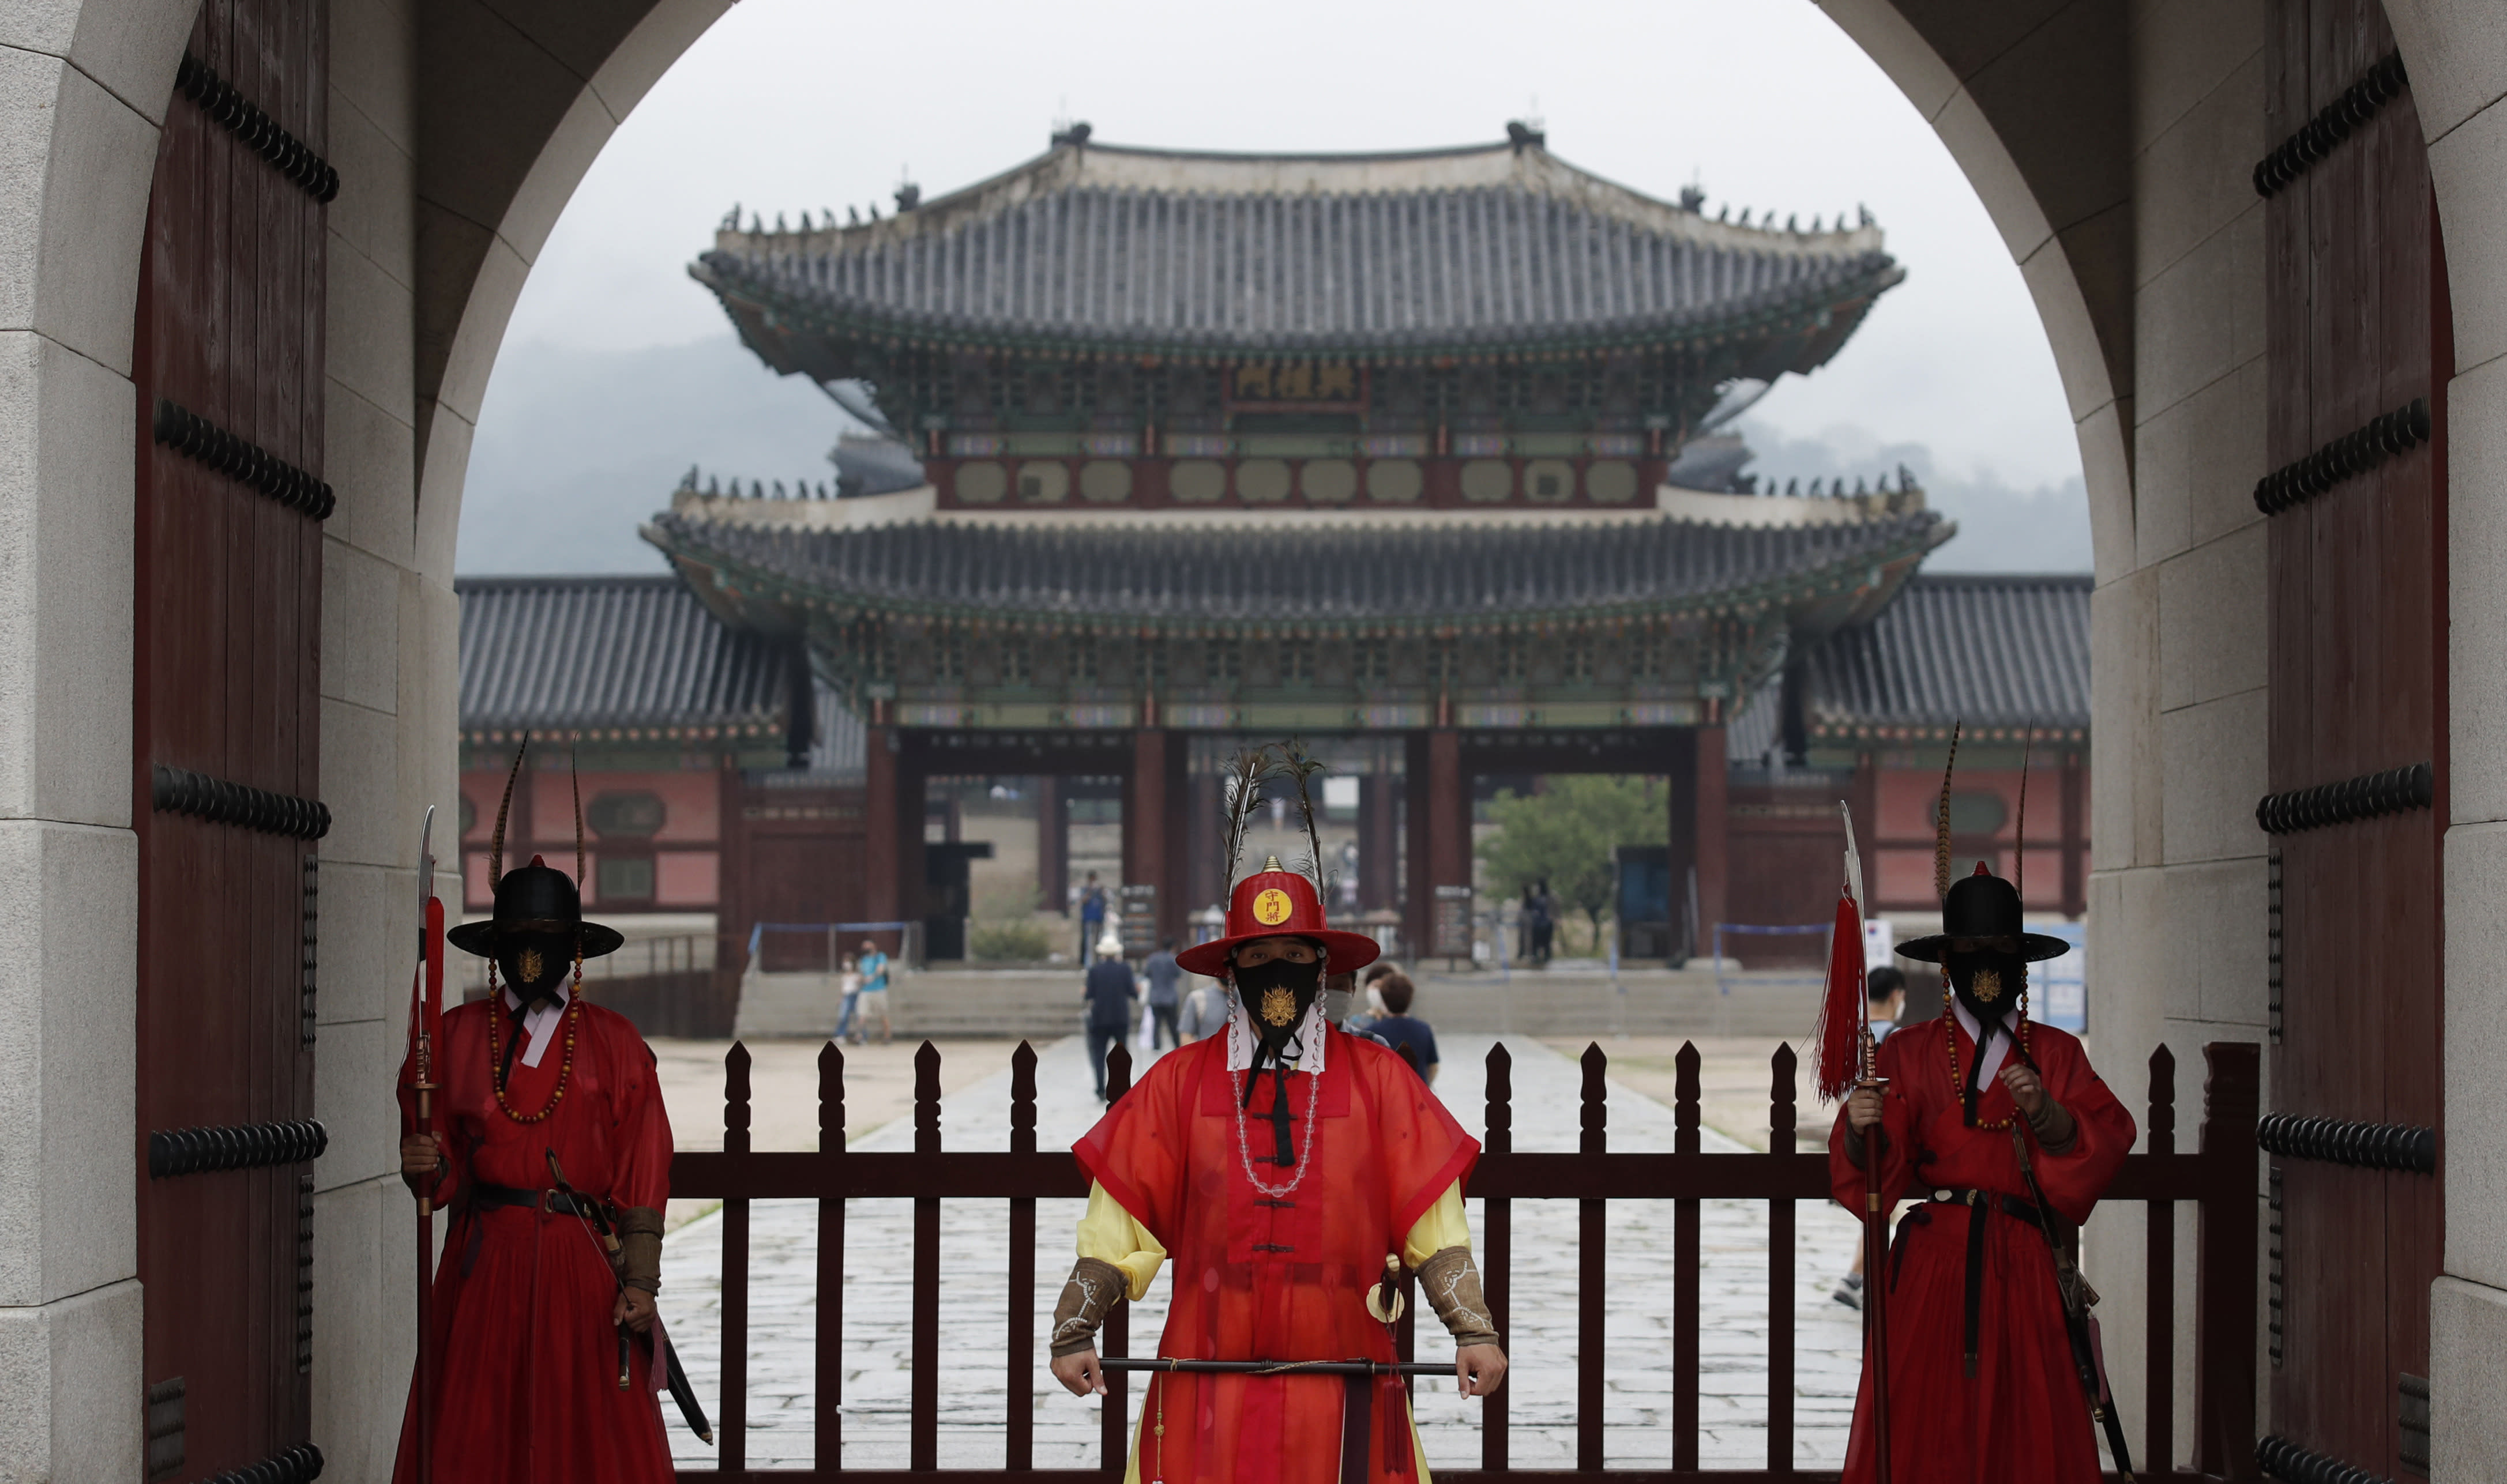 Workers wearing face masks stand during a re-enactment of the changing of the Royal Guard in front of the Gwanghwamun, the main gate of the 14th-century Gyeongbok Palace, and one of South Korea's well-known landmarks, in Seoul, South Korea, Saturday, Aug. 15, 2020. (AP Photo/Lee Jin-man)